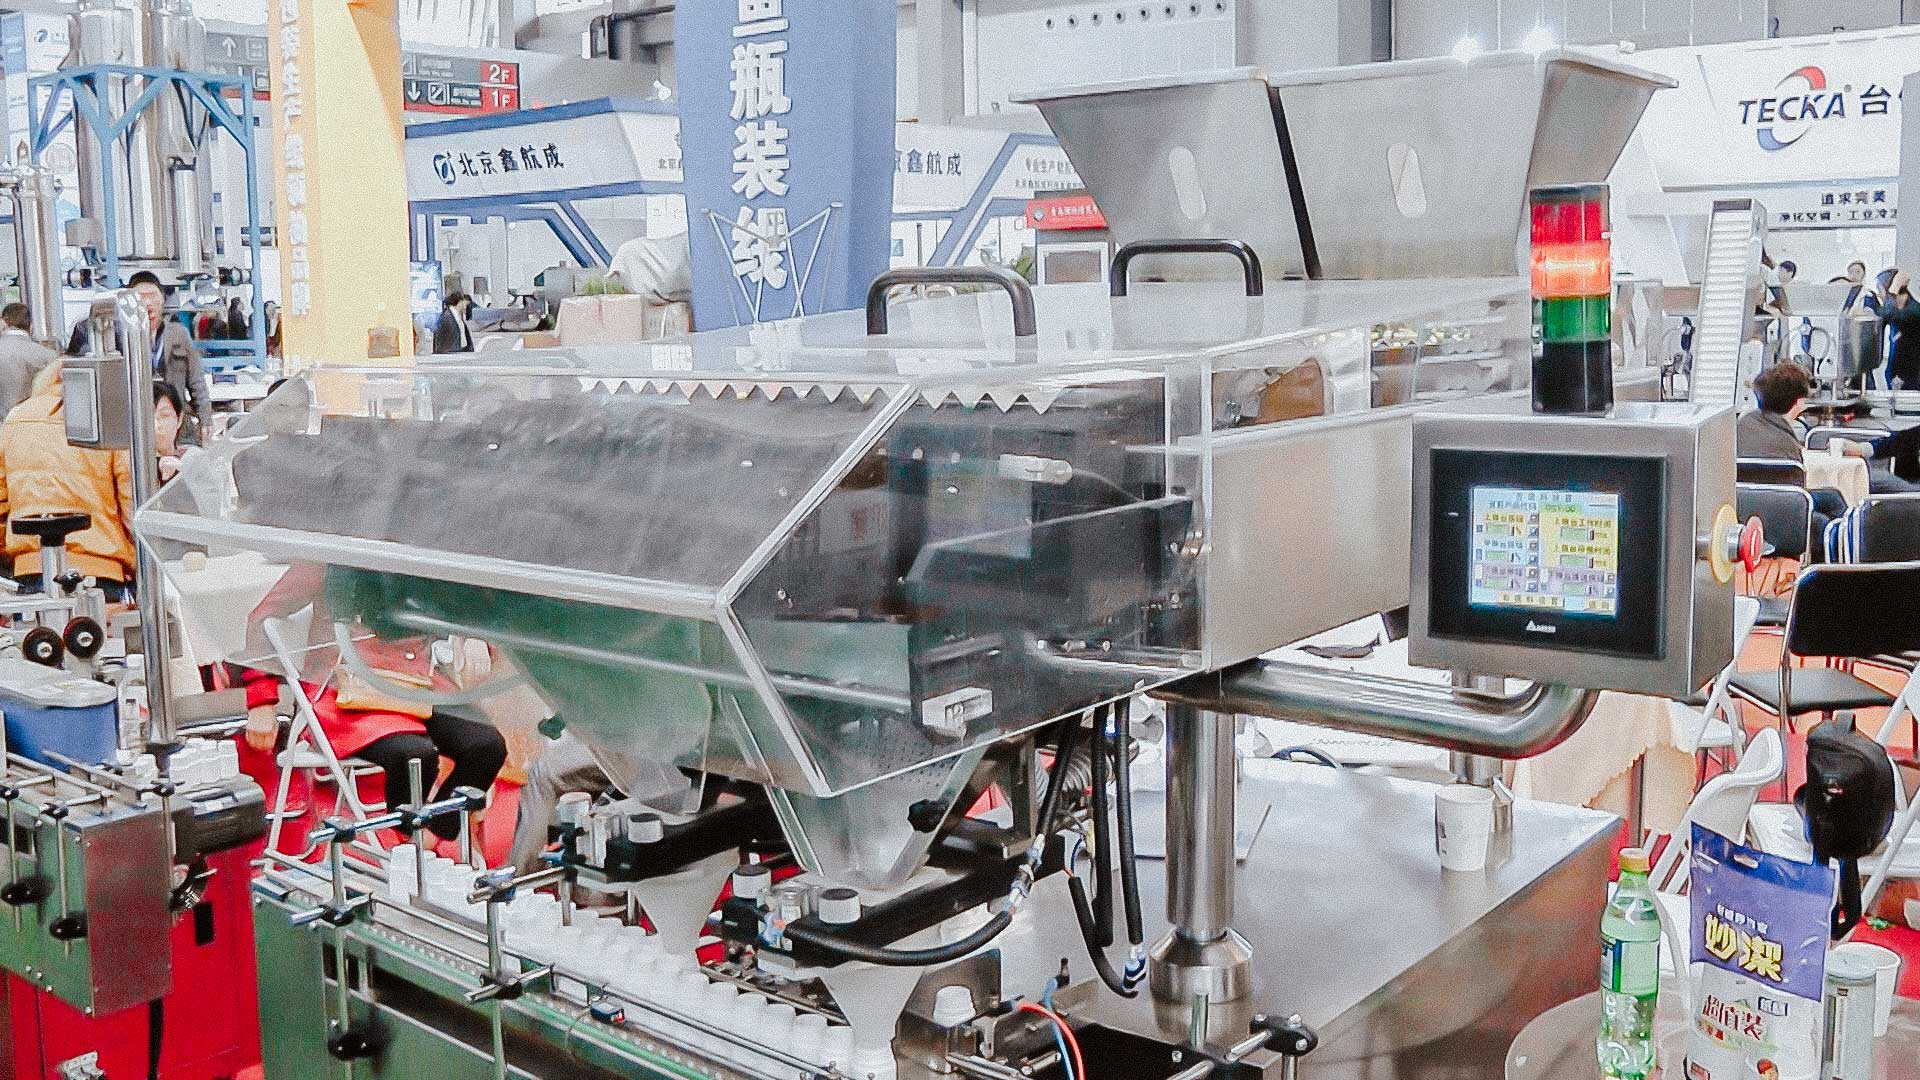 Counting and packing machine for packaging tablets and gelatin capsules in plastic bottles and capping caps